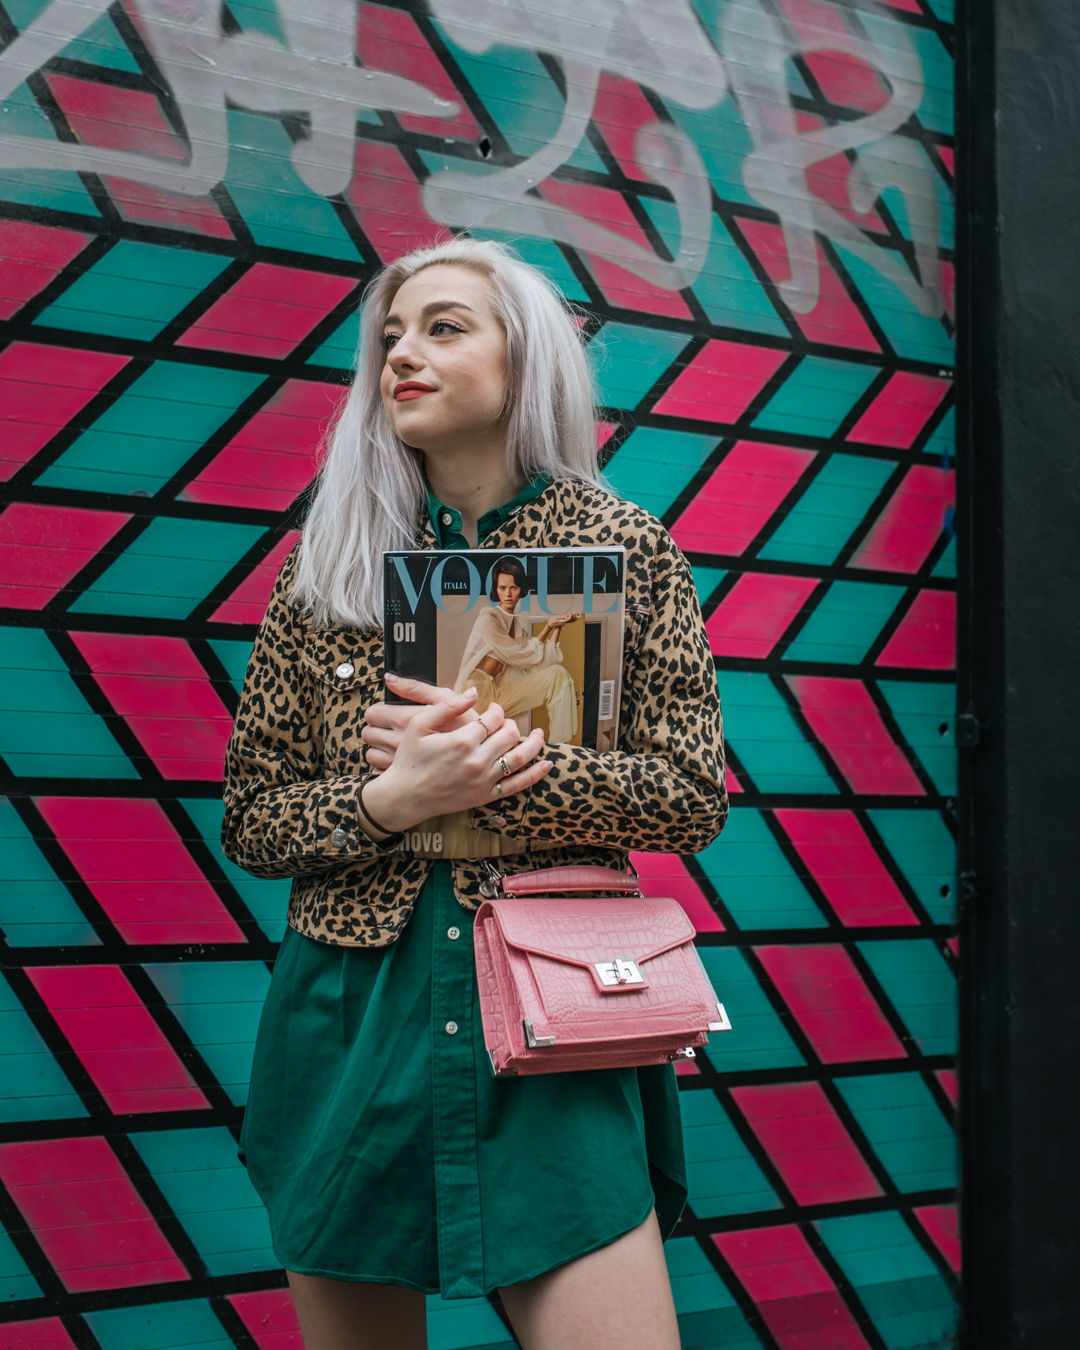 Outfit Details: Dress: Thrifted, Jacket: Topshop, Bag: The Kooples, Shoes: Bershka, Rings: Topshop